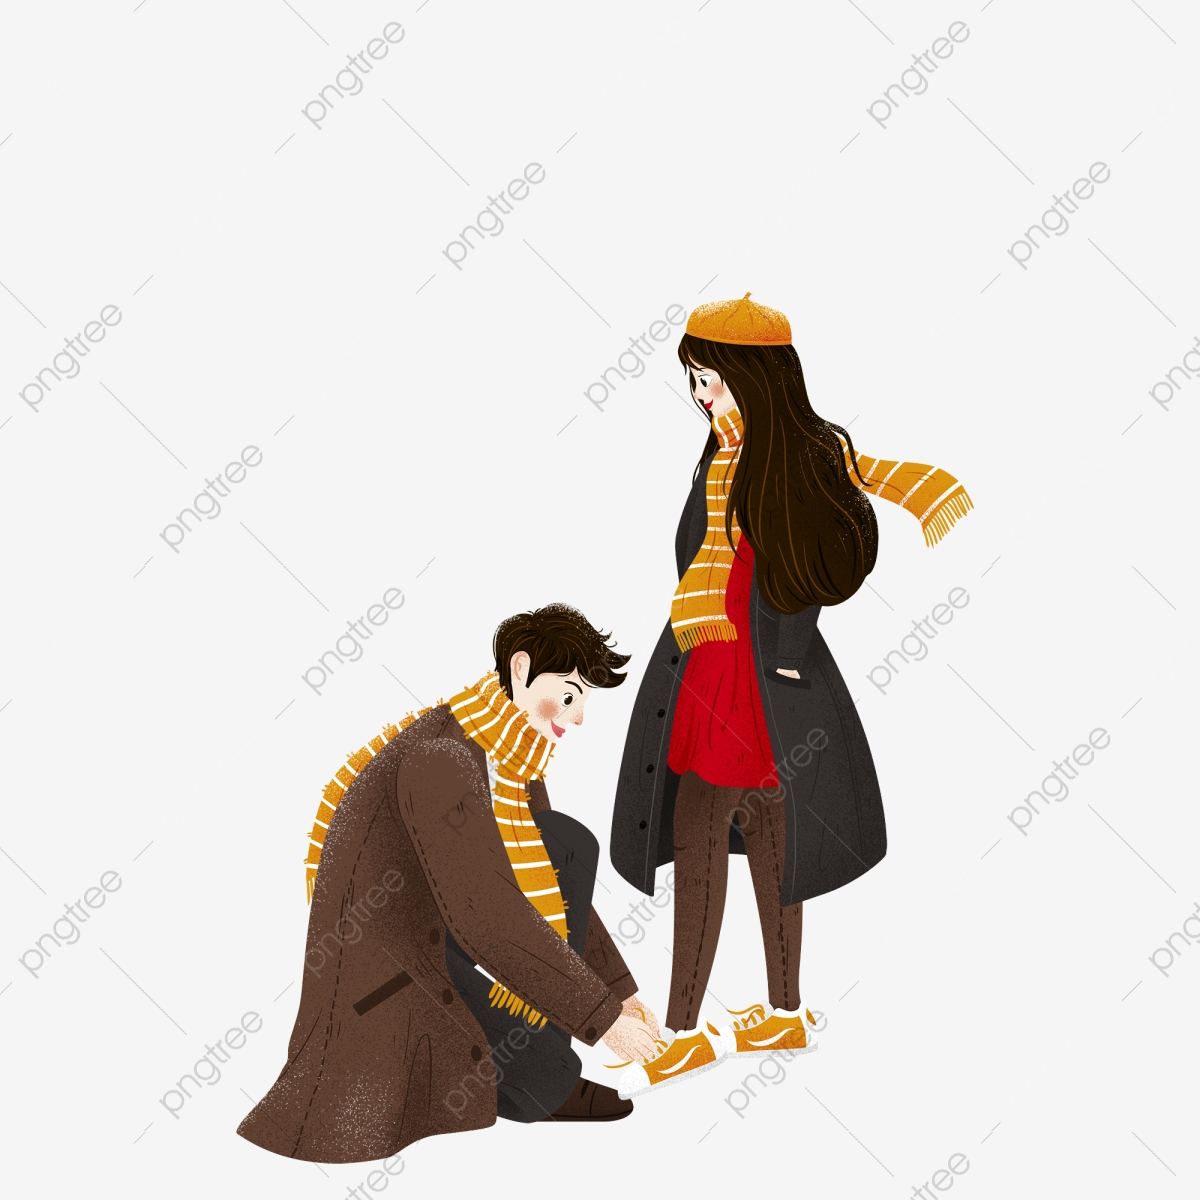 Hand Drawn Boy Tying Shoes To Girl